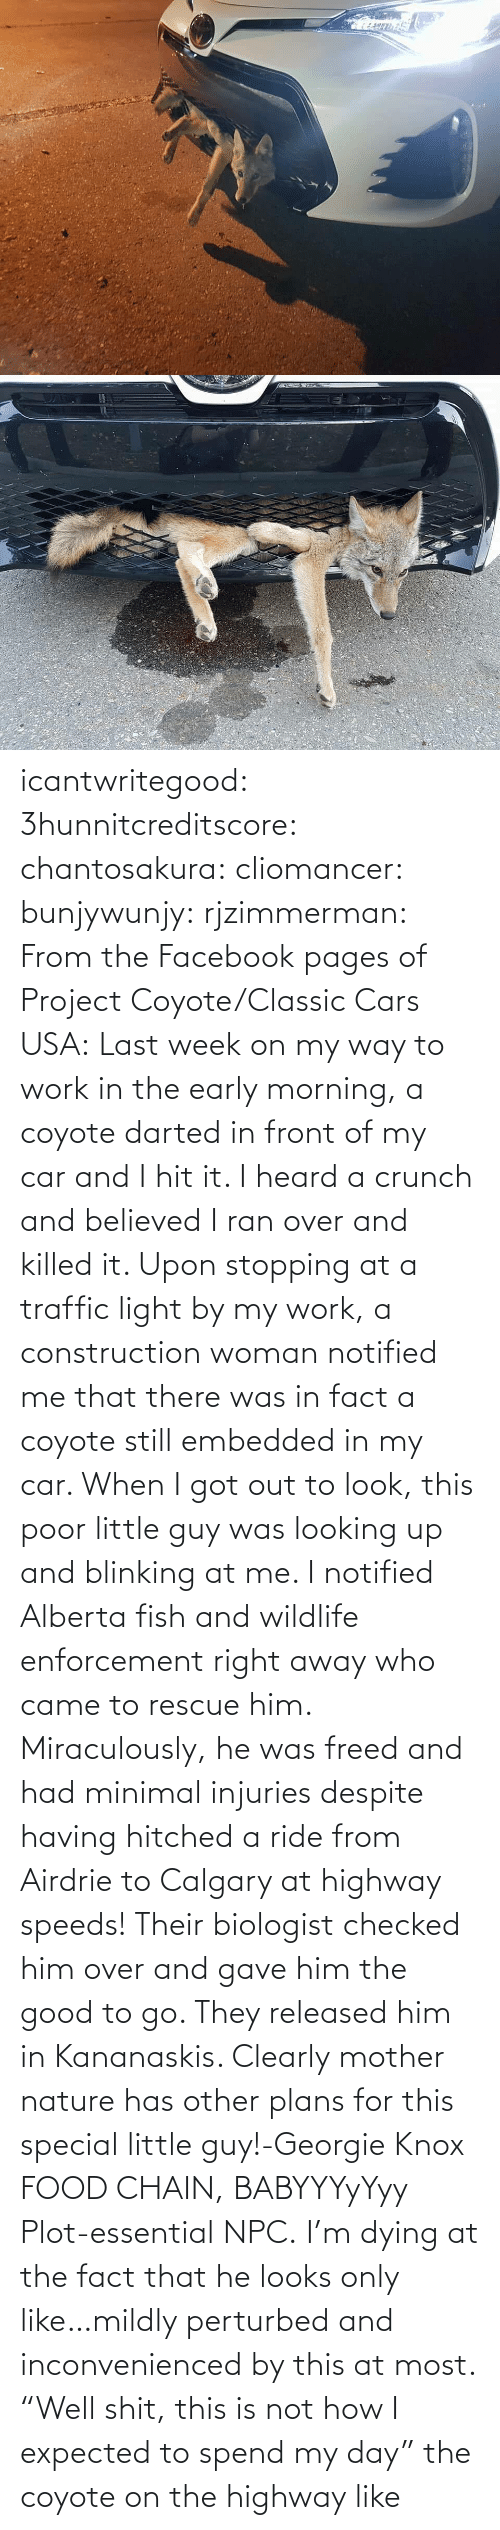 "The Fact That: icantwritegood: 3hunnitcreditscore:  chantosakura:  cliomancer:  bunjywunjy:  rjzimmerman:  From the Facebook pages of Project Coyote/Classic Cars USA: Last week on my way to work in the early morning, a coyote darted in front of my car and I hit it. I heard a crunch and believed I ran over and killed it. Upon stopping at a traffic light by my work, a construction woman notified me that there was in fact a coyote still embedded in my car. When I got out to look, this poor little guy was looking up and blinking at me. I notified Alberta fish and wildlife enforcement right away who came to rescue him. Miraculously, he was freed and had minimal injuries despite having hitched a ride from Airdrie to Calgary at highway speeds! Their biologist checked him over and gave him the good to go. They released him in Kananaskis. Clearly mother nature has other plans for this special little guy!-Georgie Knox  FOOD CHAIN, BABYYYyYyy  Plot-essential NPC.   I'm dying at the fact that he looks only like…mildly perturbed and inconvenienced by this at most.    ""Well shit, this is not how I expected to spend my day""  the coyote on the highway like"